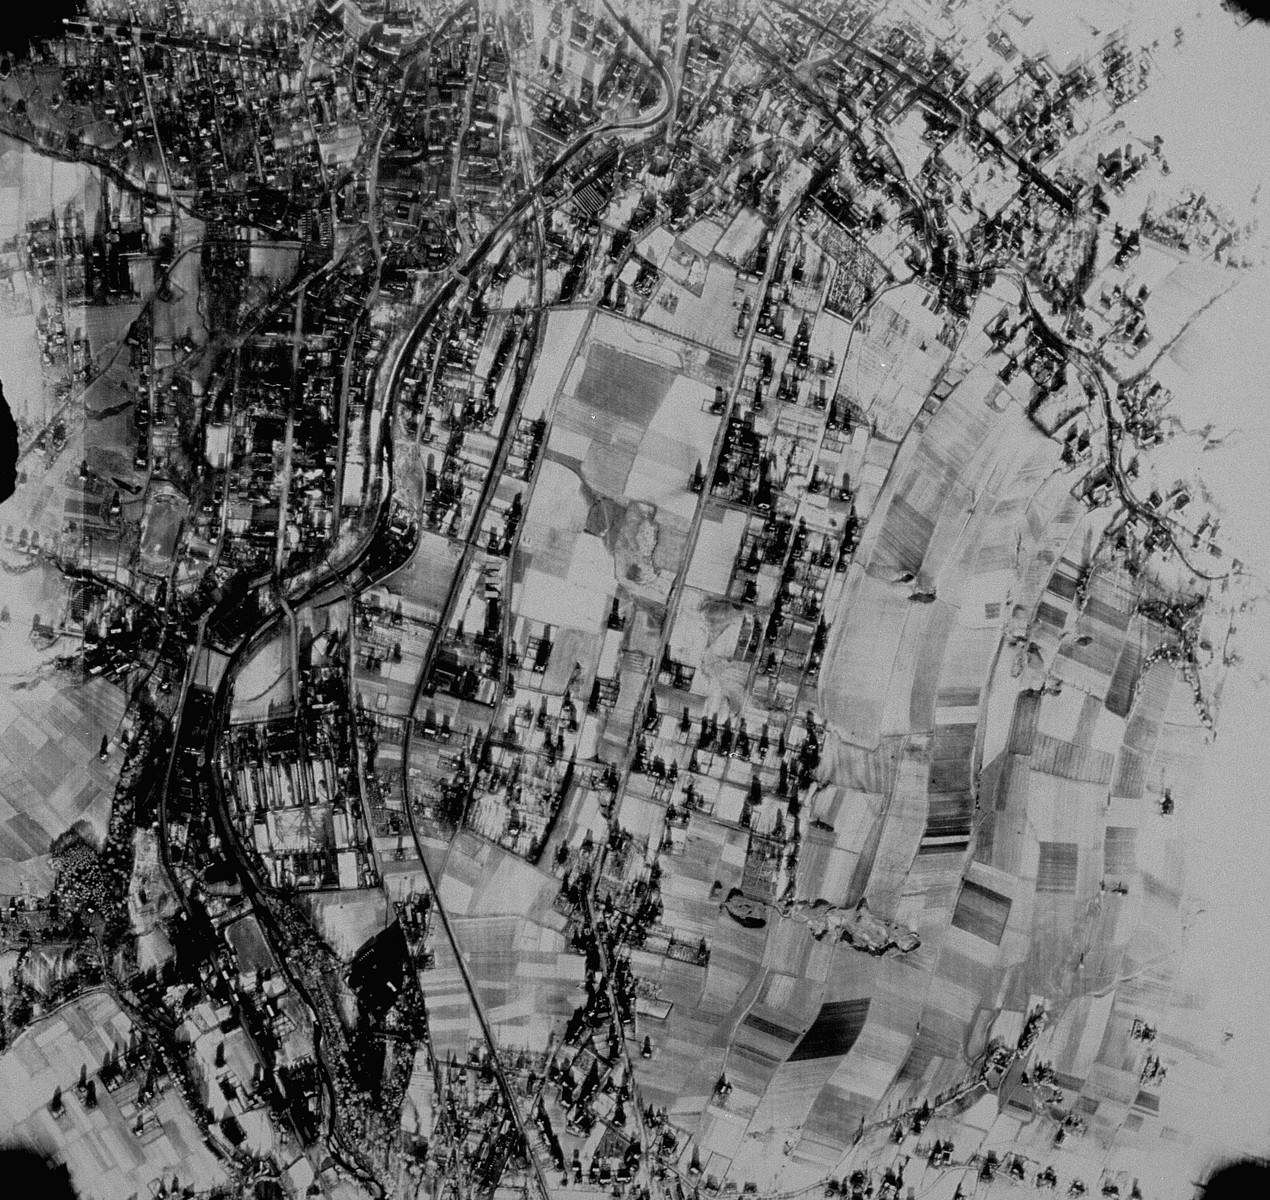 "An aerial reconnaissance photograph of the Auschwitz concentration camp showing Auschwitz I under heavy snow cover.  Mission:  5SG/1085 5PG;  Scale: 1/42,000;  Focal Length: 6"";  Altitude: 21,000;  [oversized photograph]"